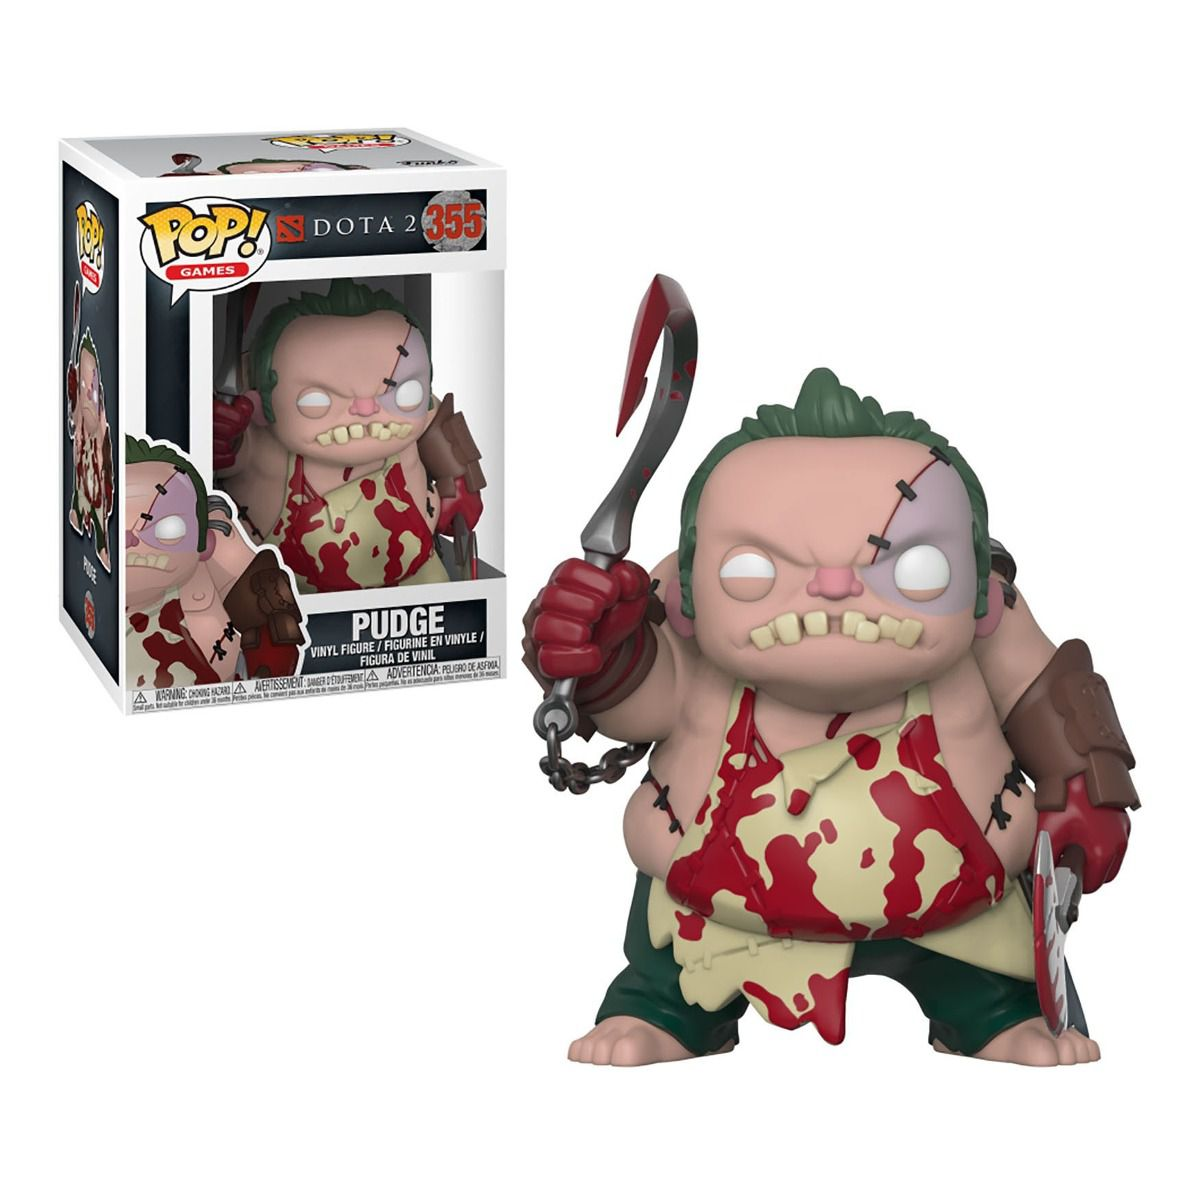 Funko Pop Games Dota 2 - Pudge